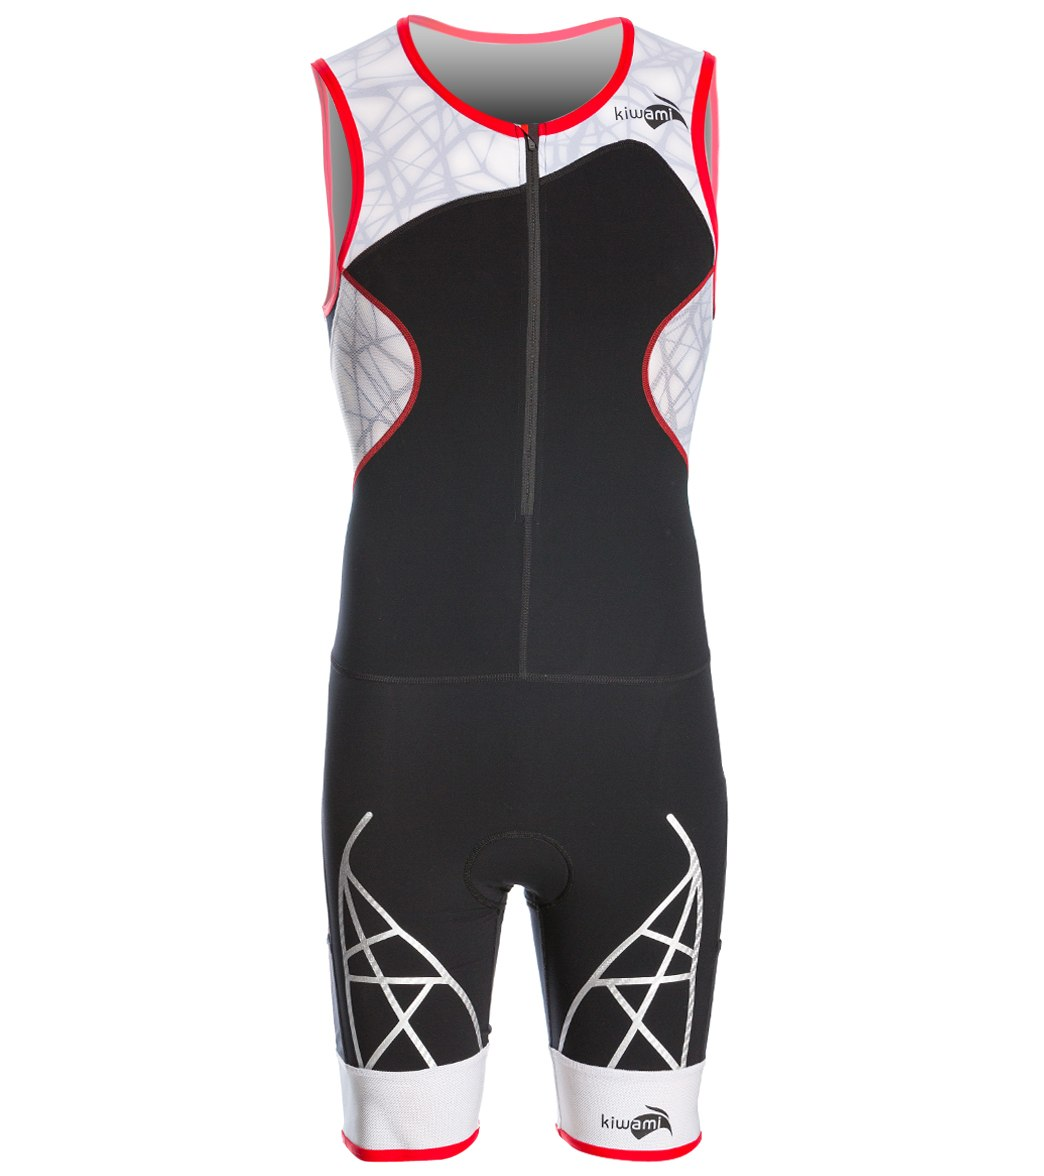 17953b0cbad Kiwami Men s Spider LD1 Trisuit at SwimOutlet.com - Free Shipping